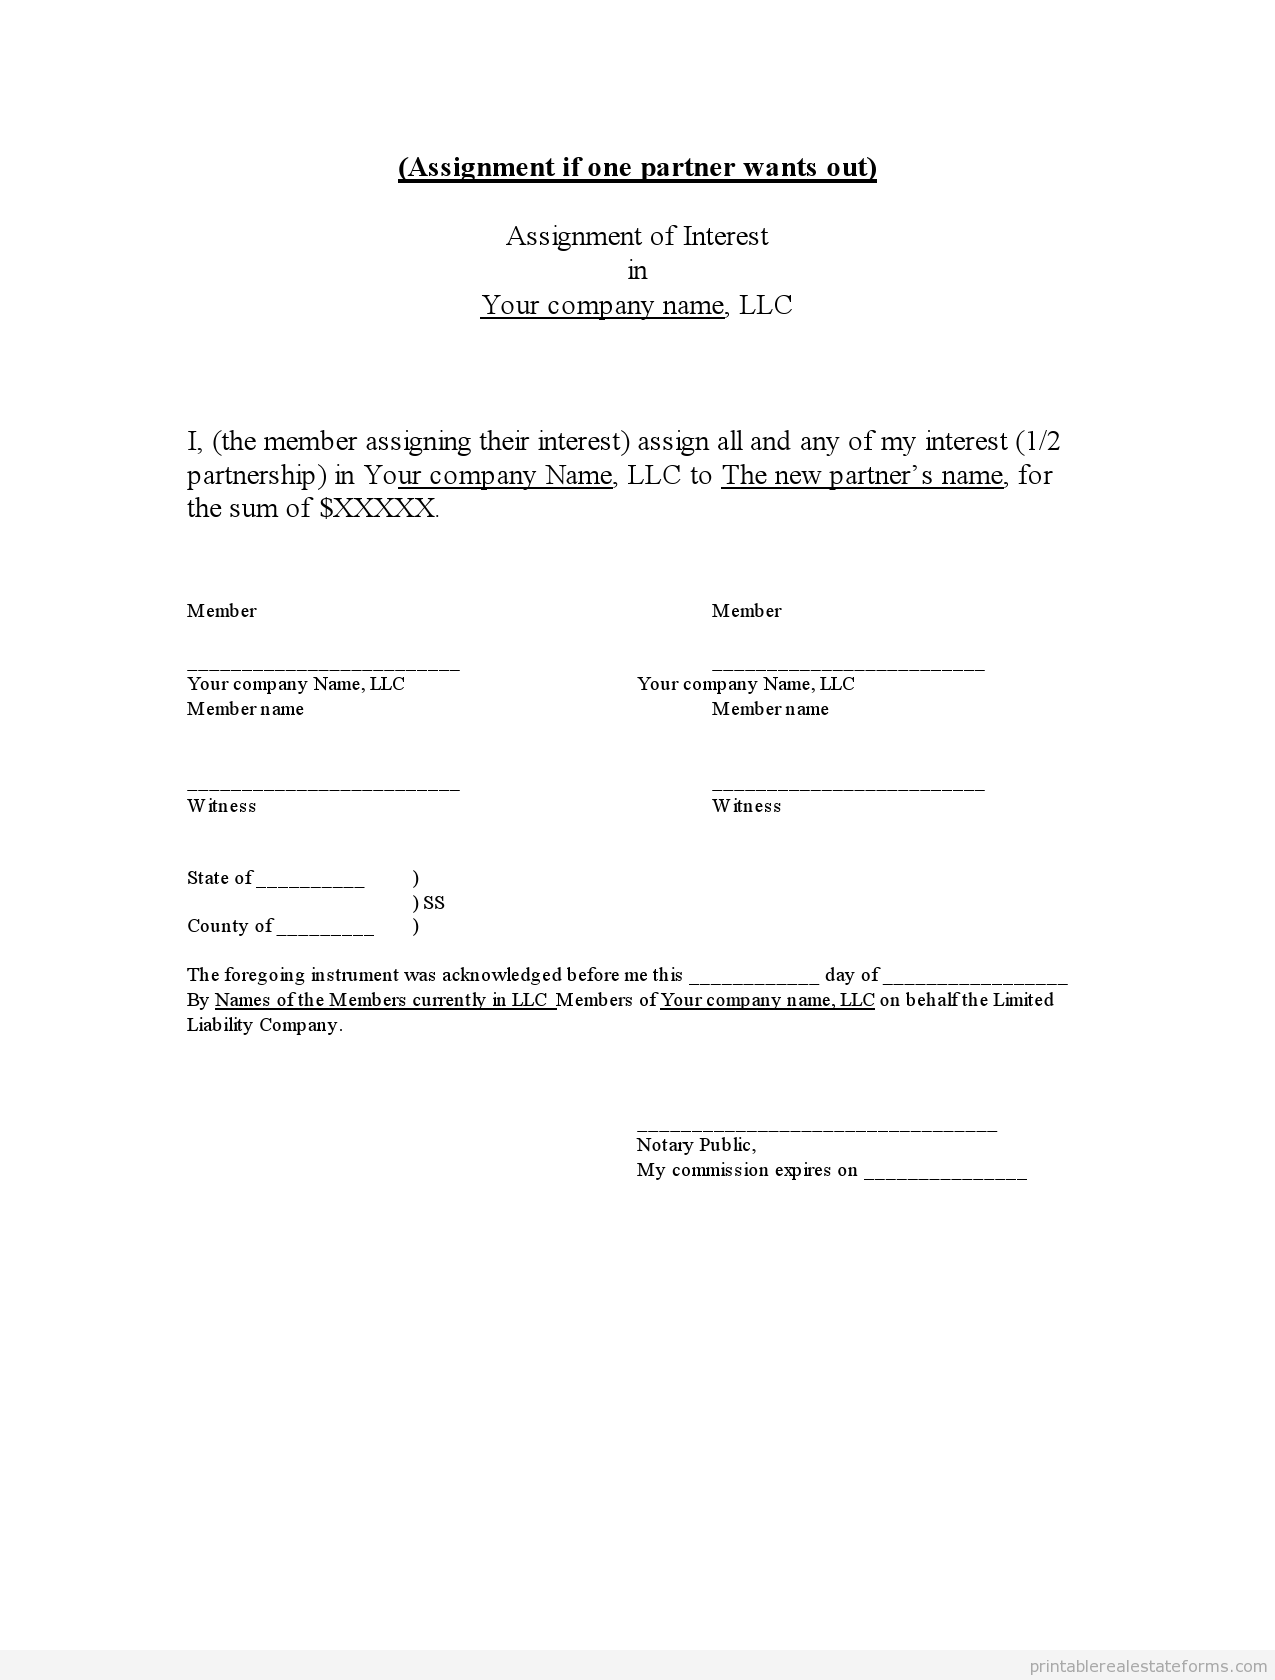 Sample Printable Assignment Of Llc Interest Form  Printable Real